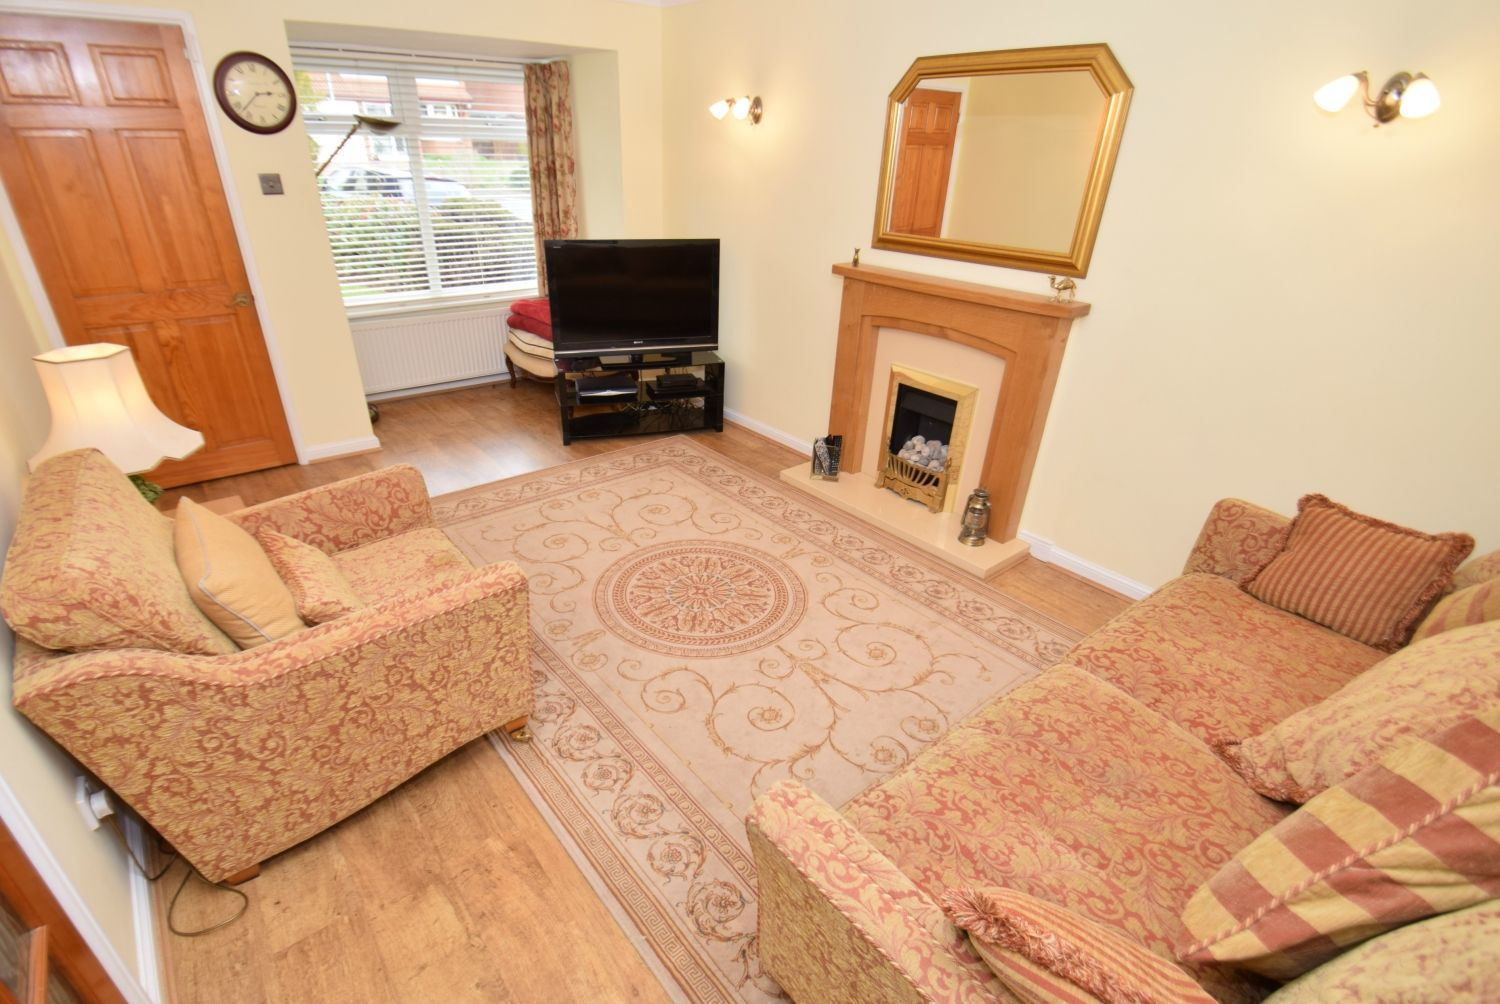 3 bed detached for sale in Foxes Close, Blackwell, B60  - Property Image 7